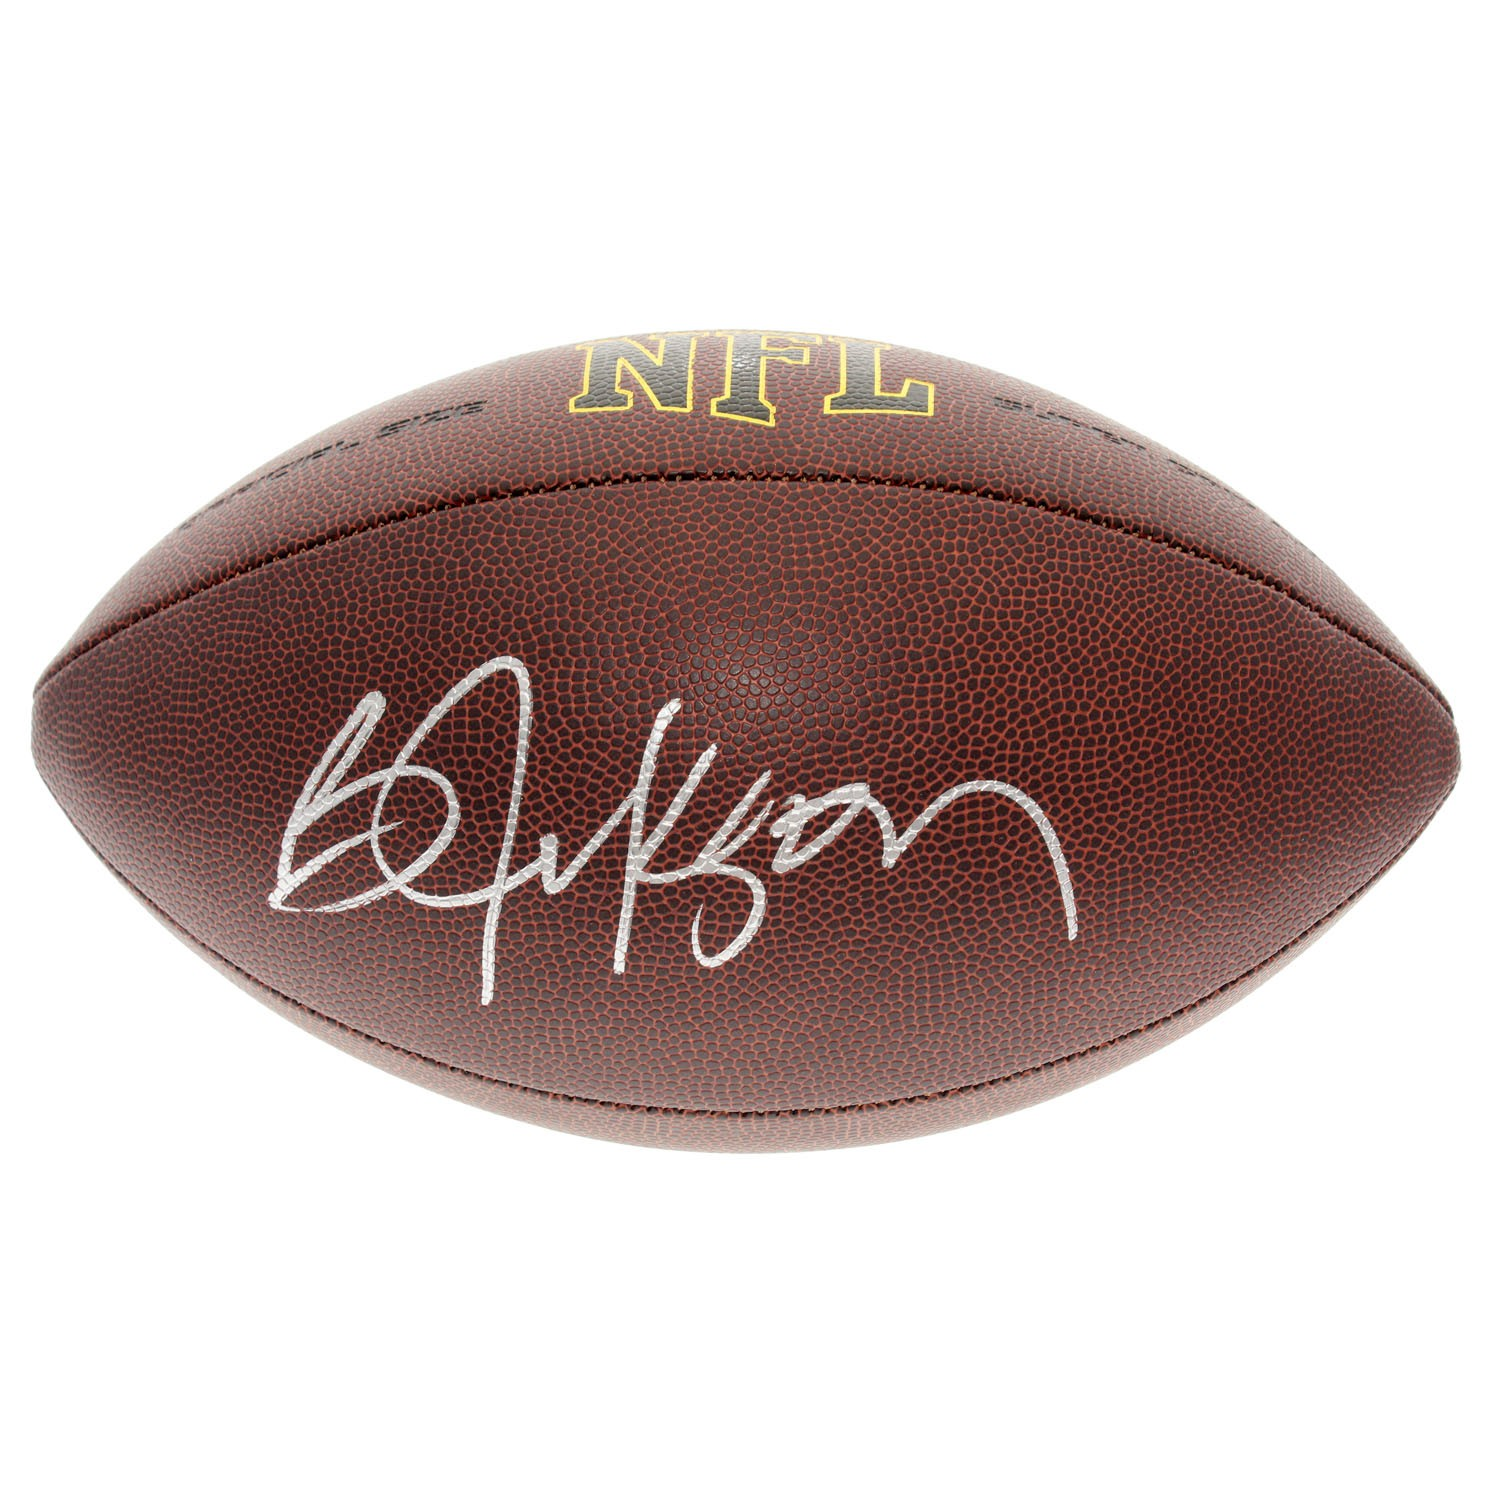 cheap for discount 44d45 211b6 Bo Jackson Autographed Signed NFL Supergrip Football - PSA ...